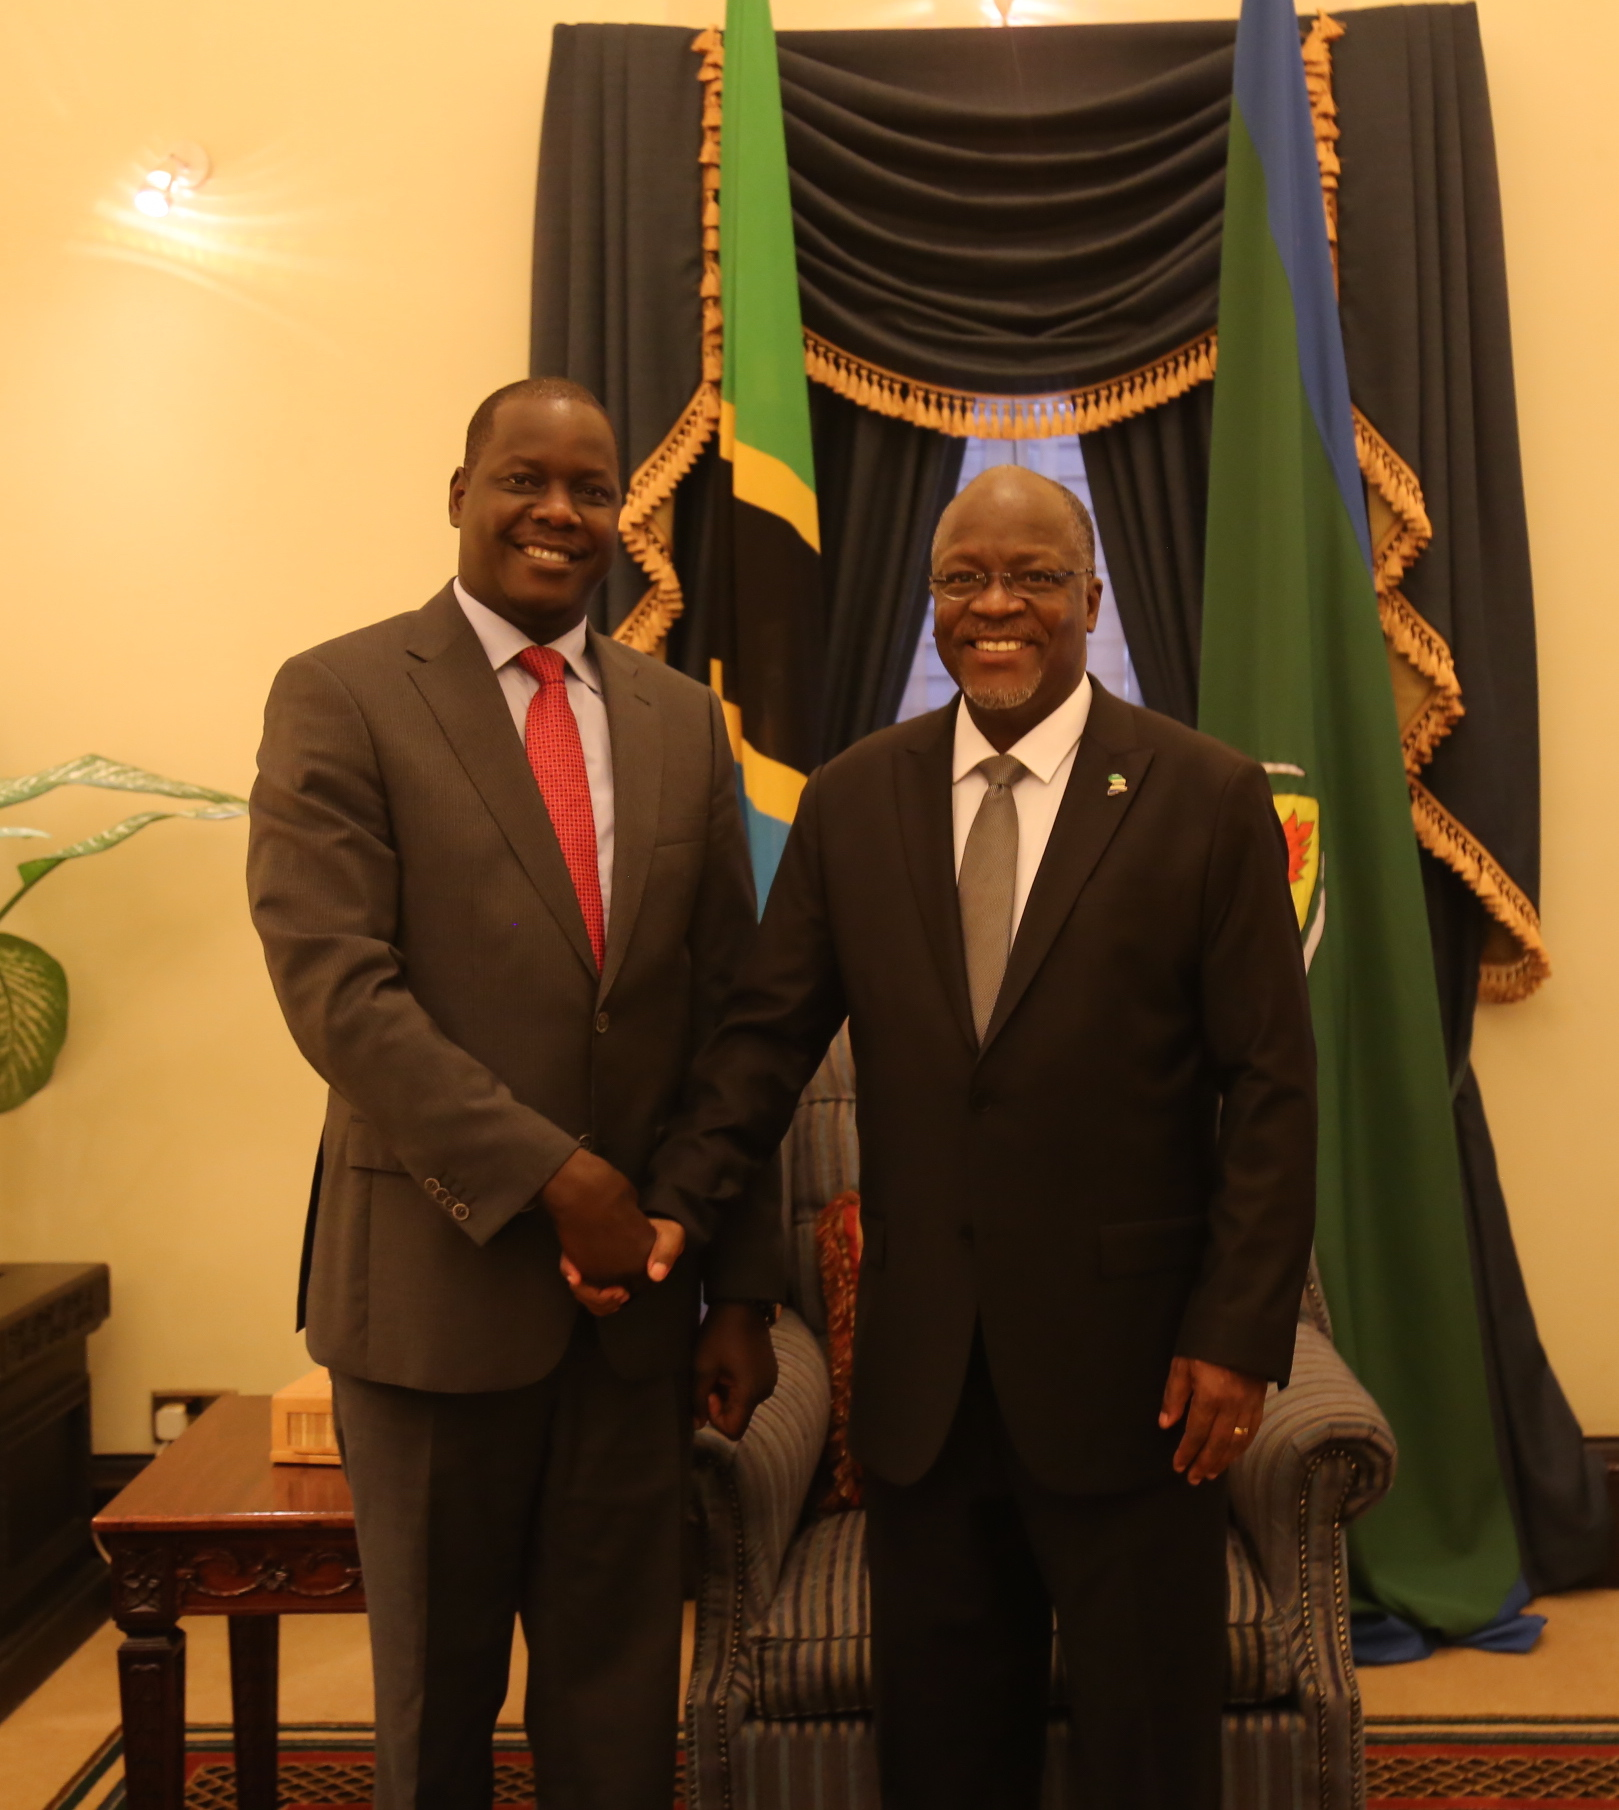 H.E Dr John Pombe Joseph Magufuli and the EALA Speaker, Rt Hon Daniel F. Kidega at the meeting in State House in Dar Es Salaam